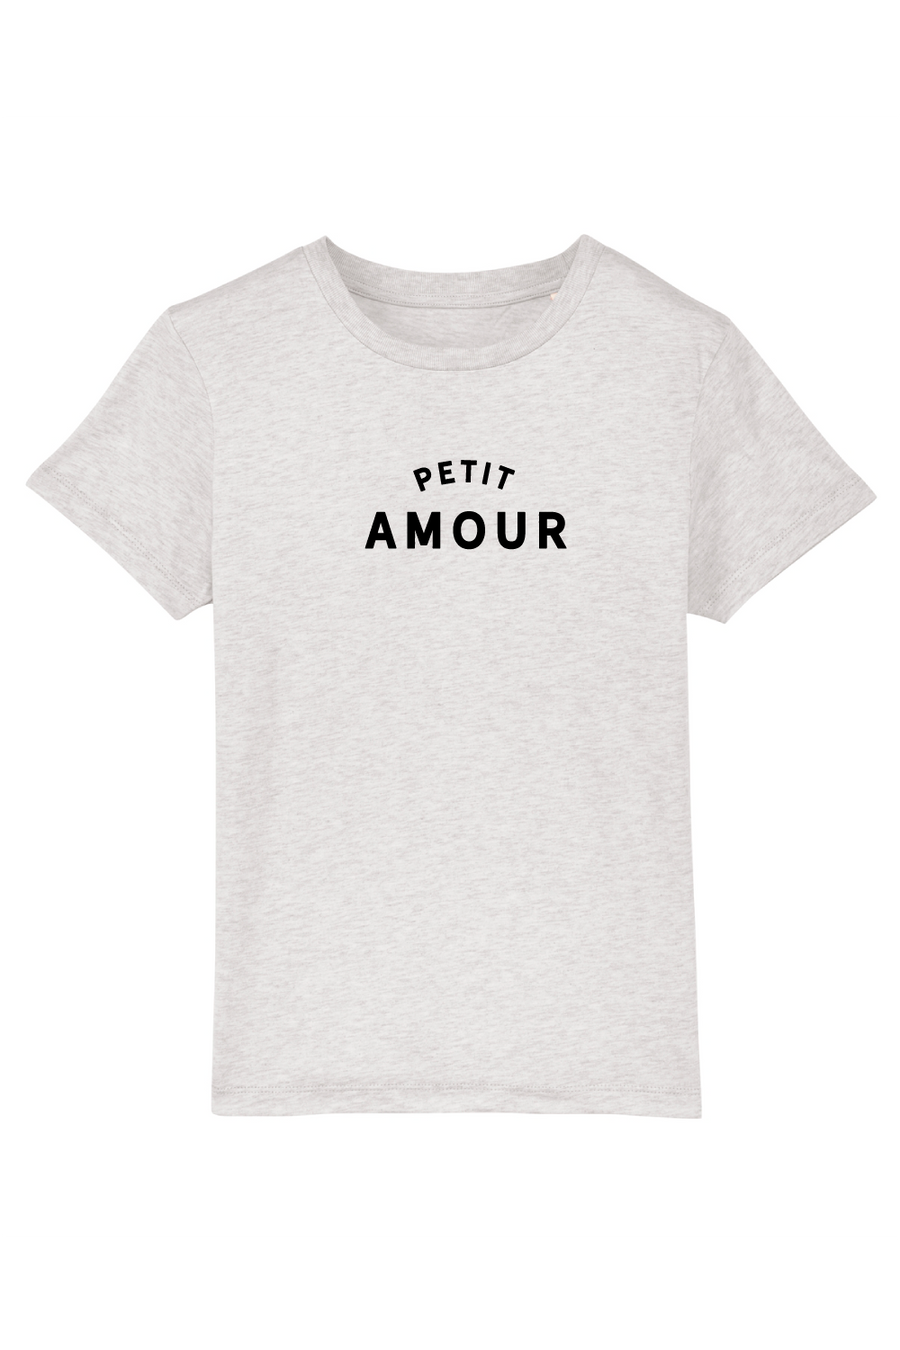 Petit amour kids - Joh Clothing